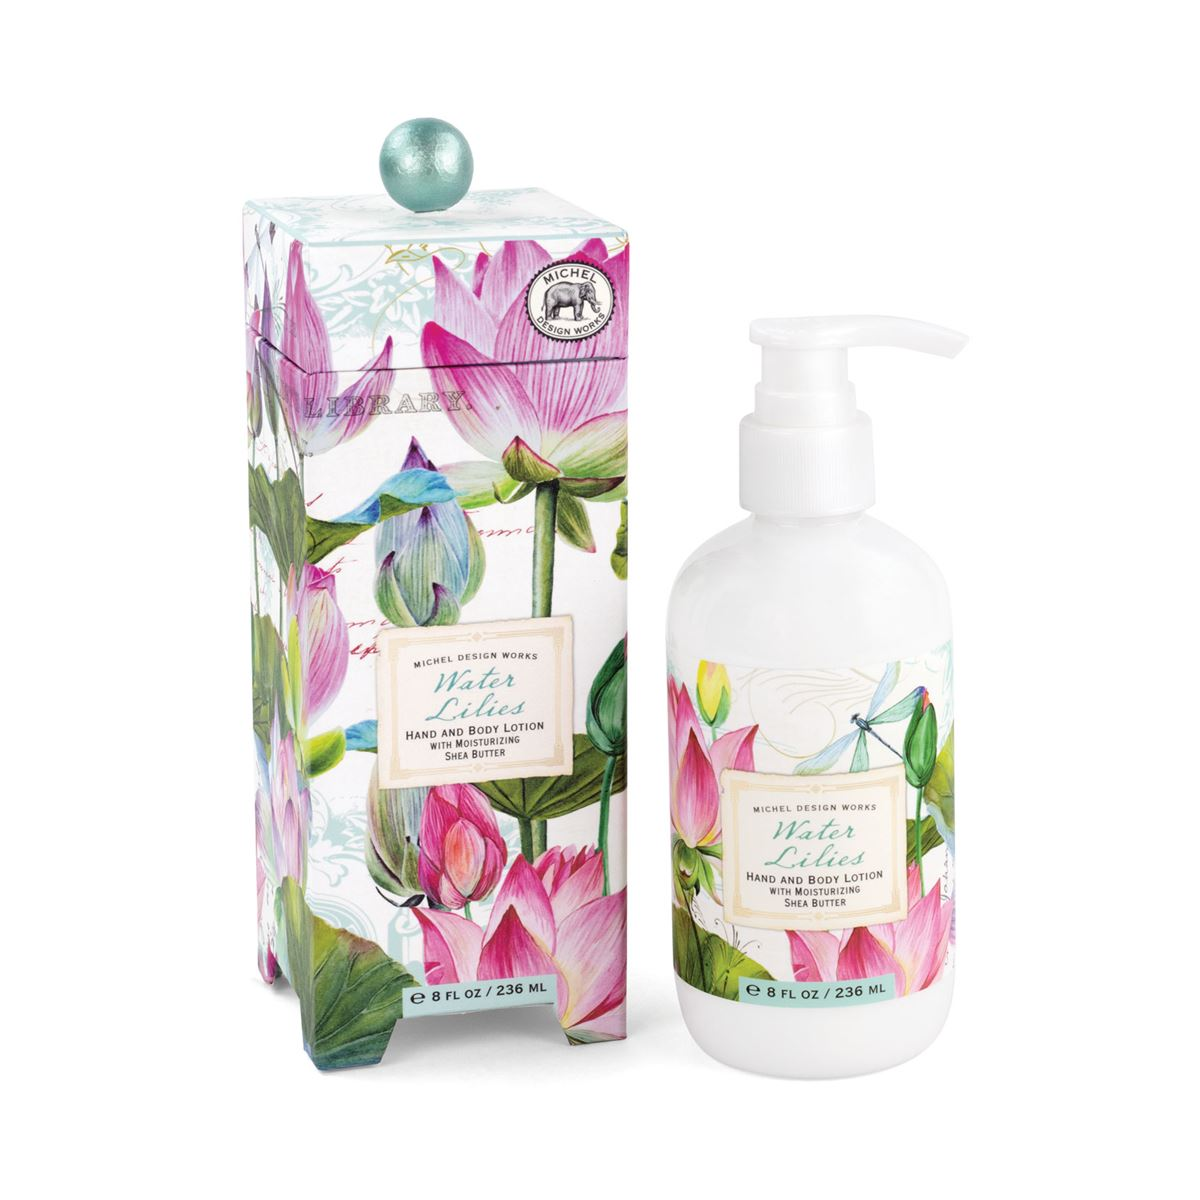 Water Lilies - Hand and Body Lotion